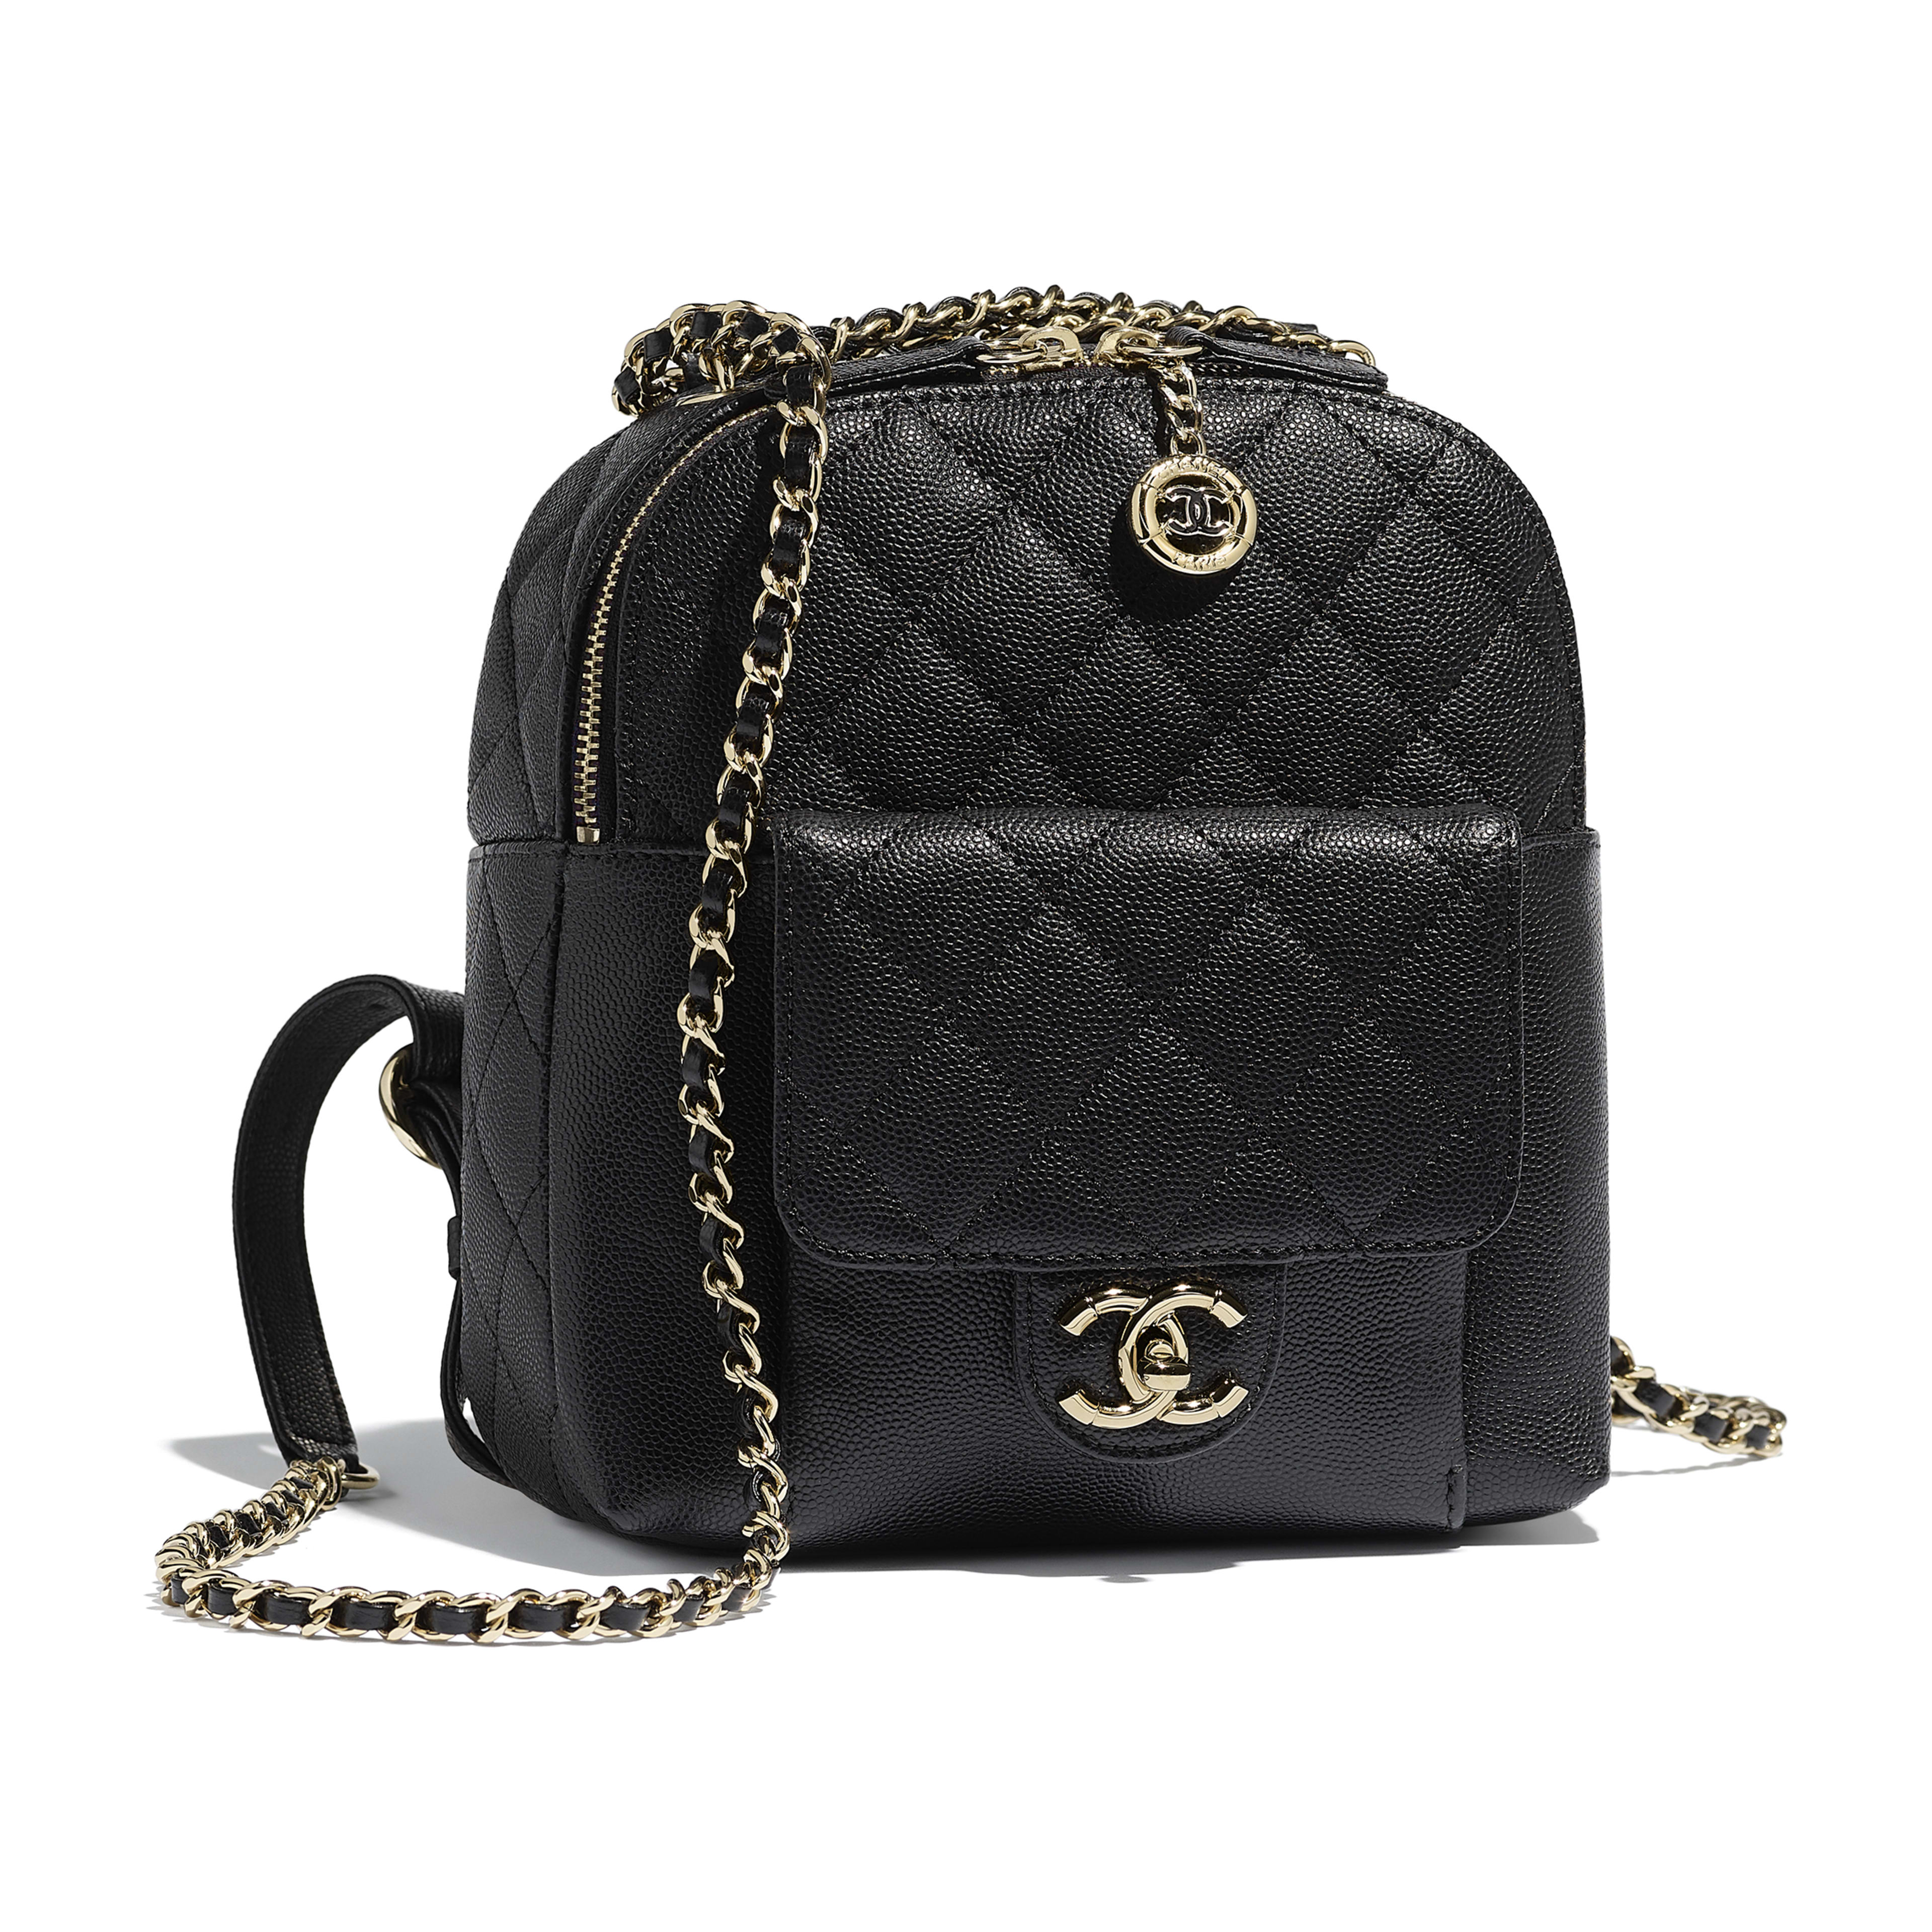 Backpack - Black - Grained Calfskin & Gold-Tone Metal - Default view - see full sized version